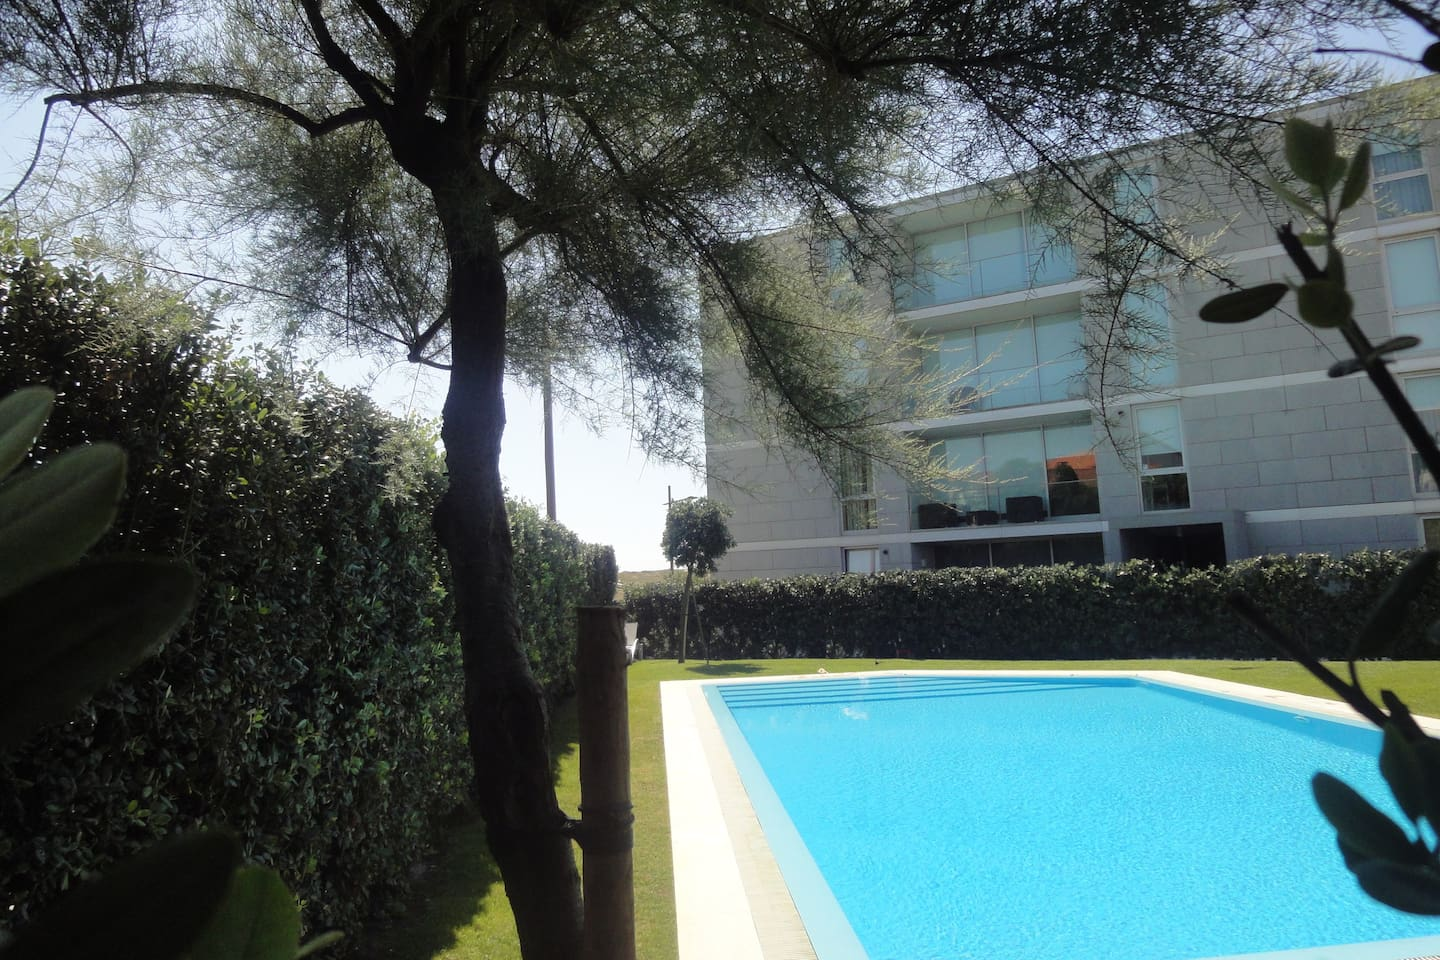 Luxury fully equipped apartment next to pool, beach, ....